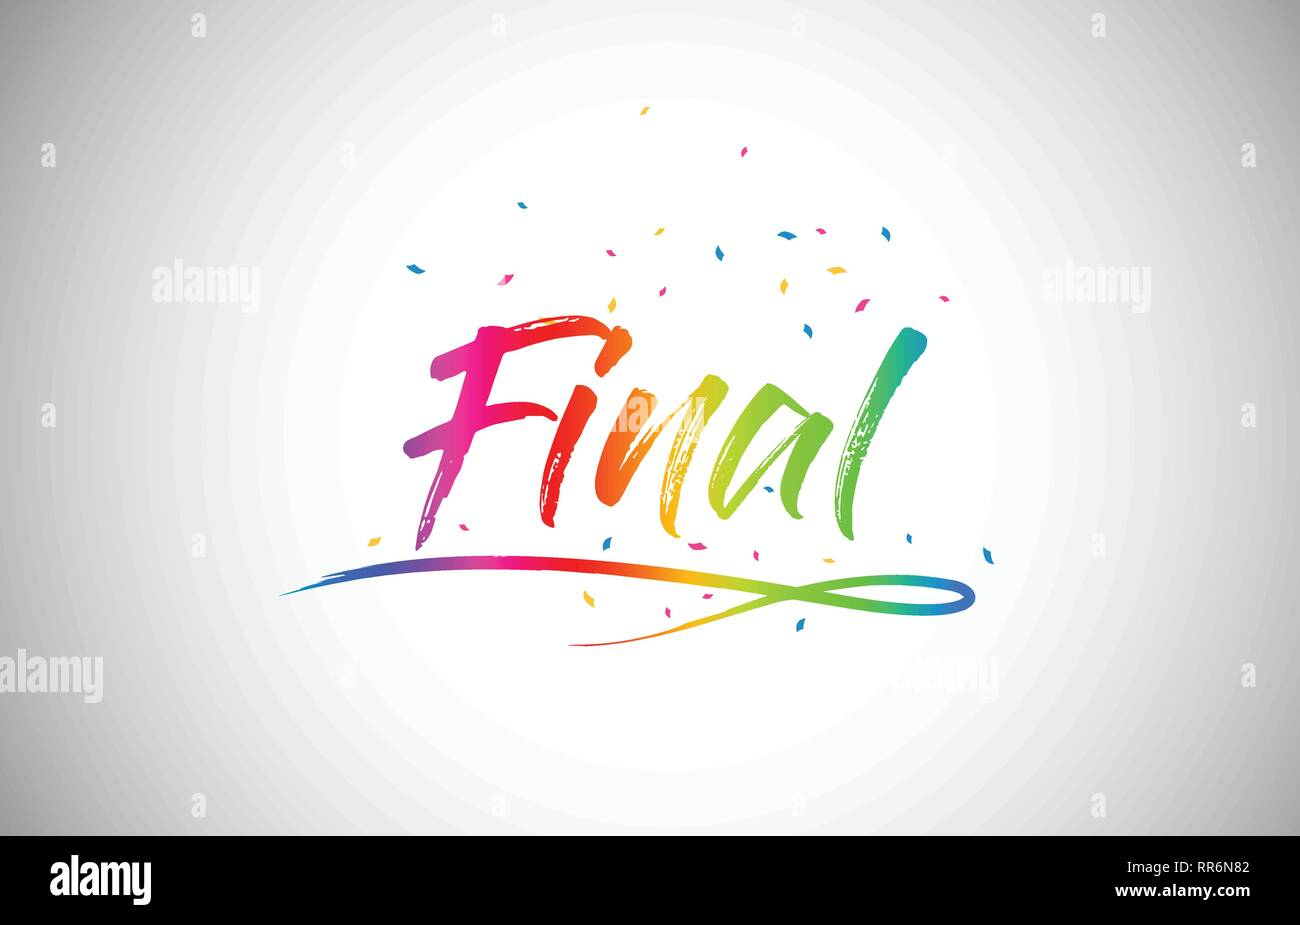 Final Creative Word Text with Handwritten Rainbow Vibrant Colors and Confetti Vector Illustration. - Stock Vector